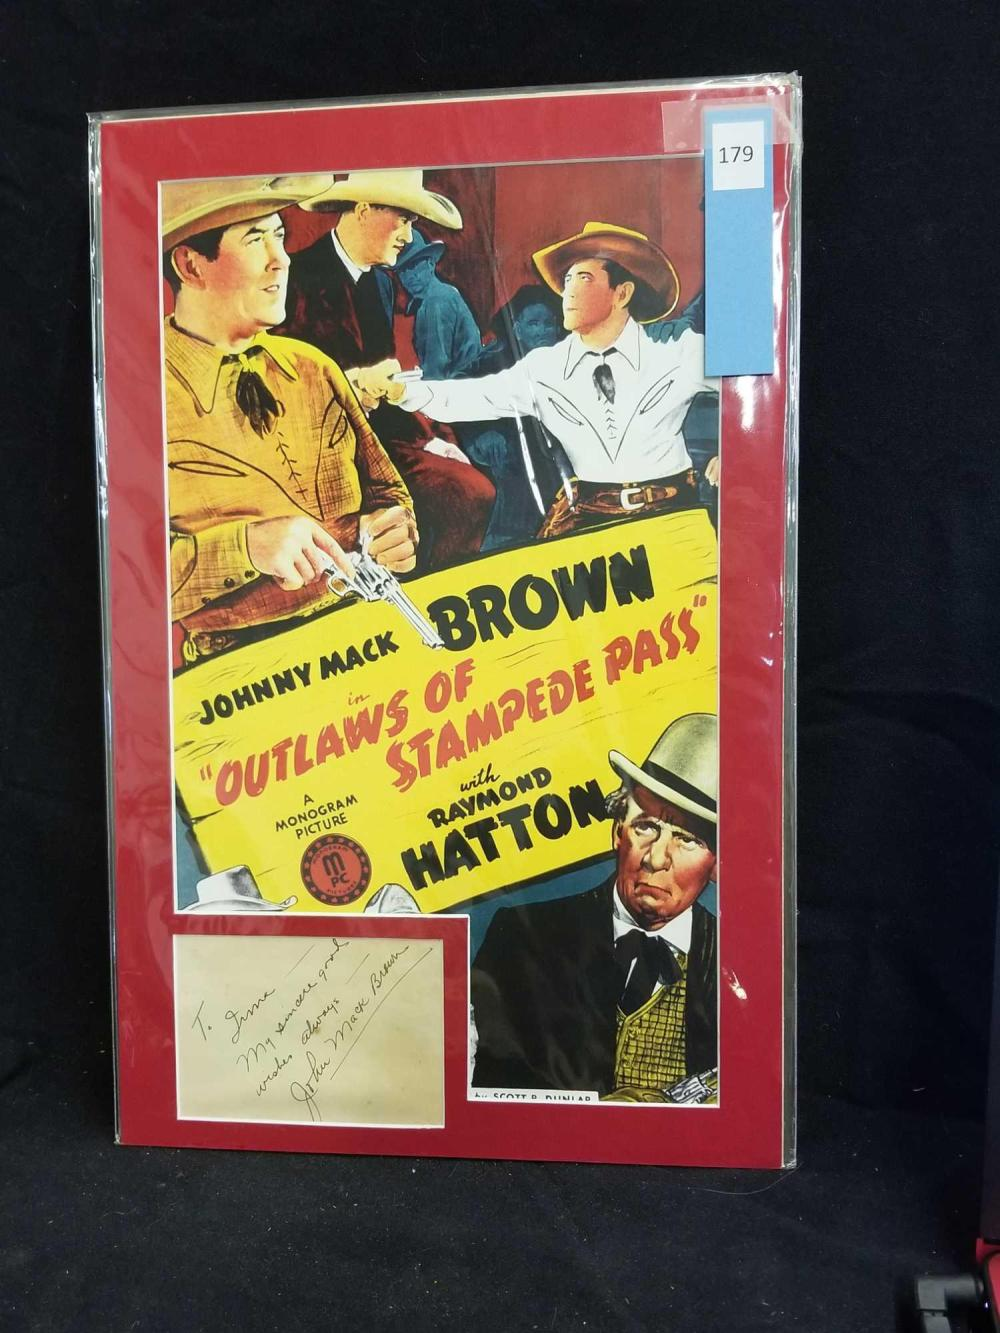 JOHN MACK BROWN REPRODUCTION COLOR MOVIE POSTER & SIGNATURE CARD